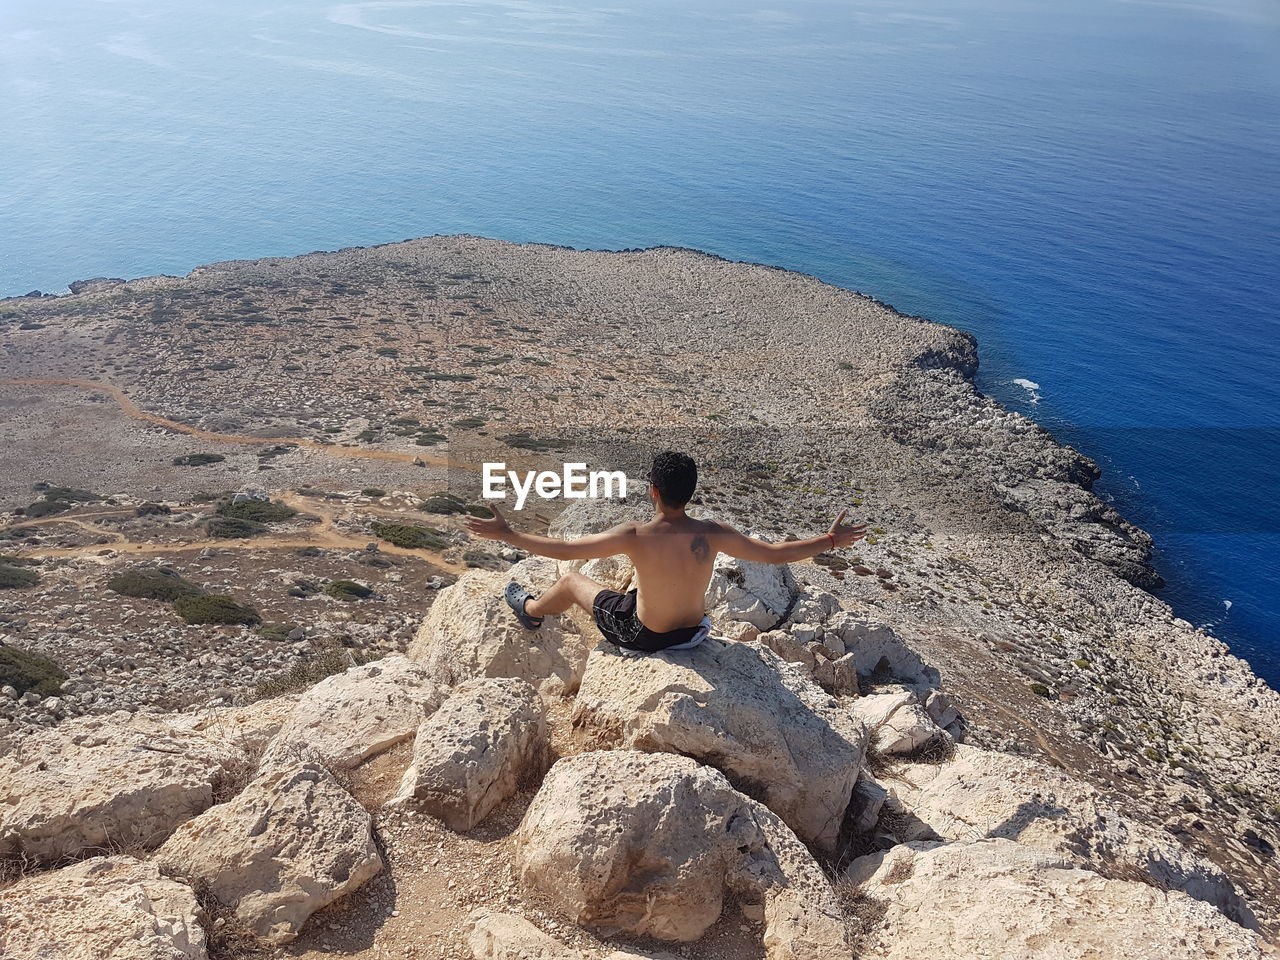 High angle view of man sitting on rock at beach